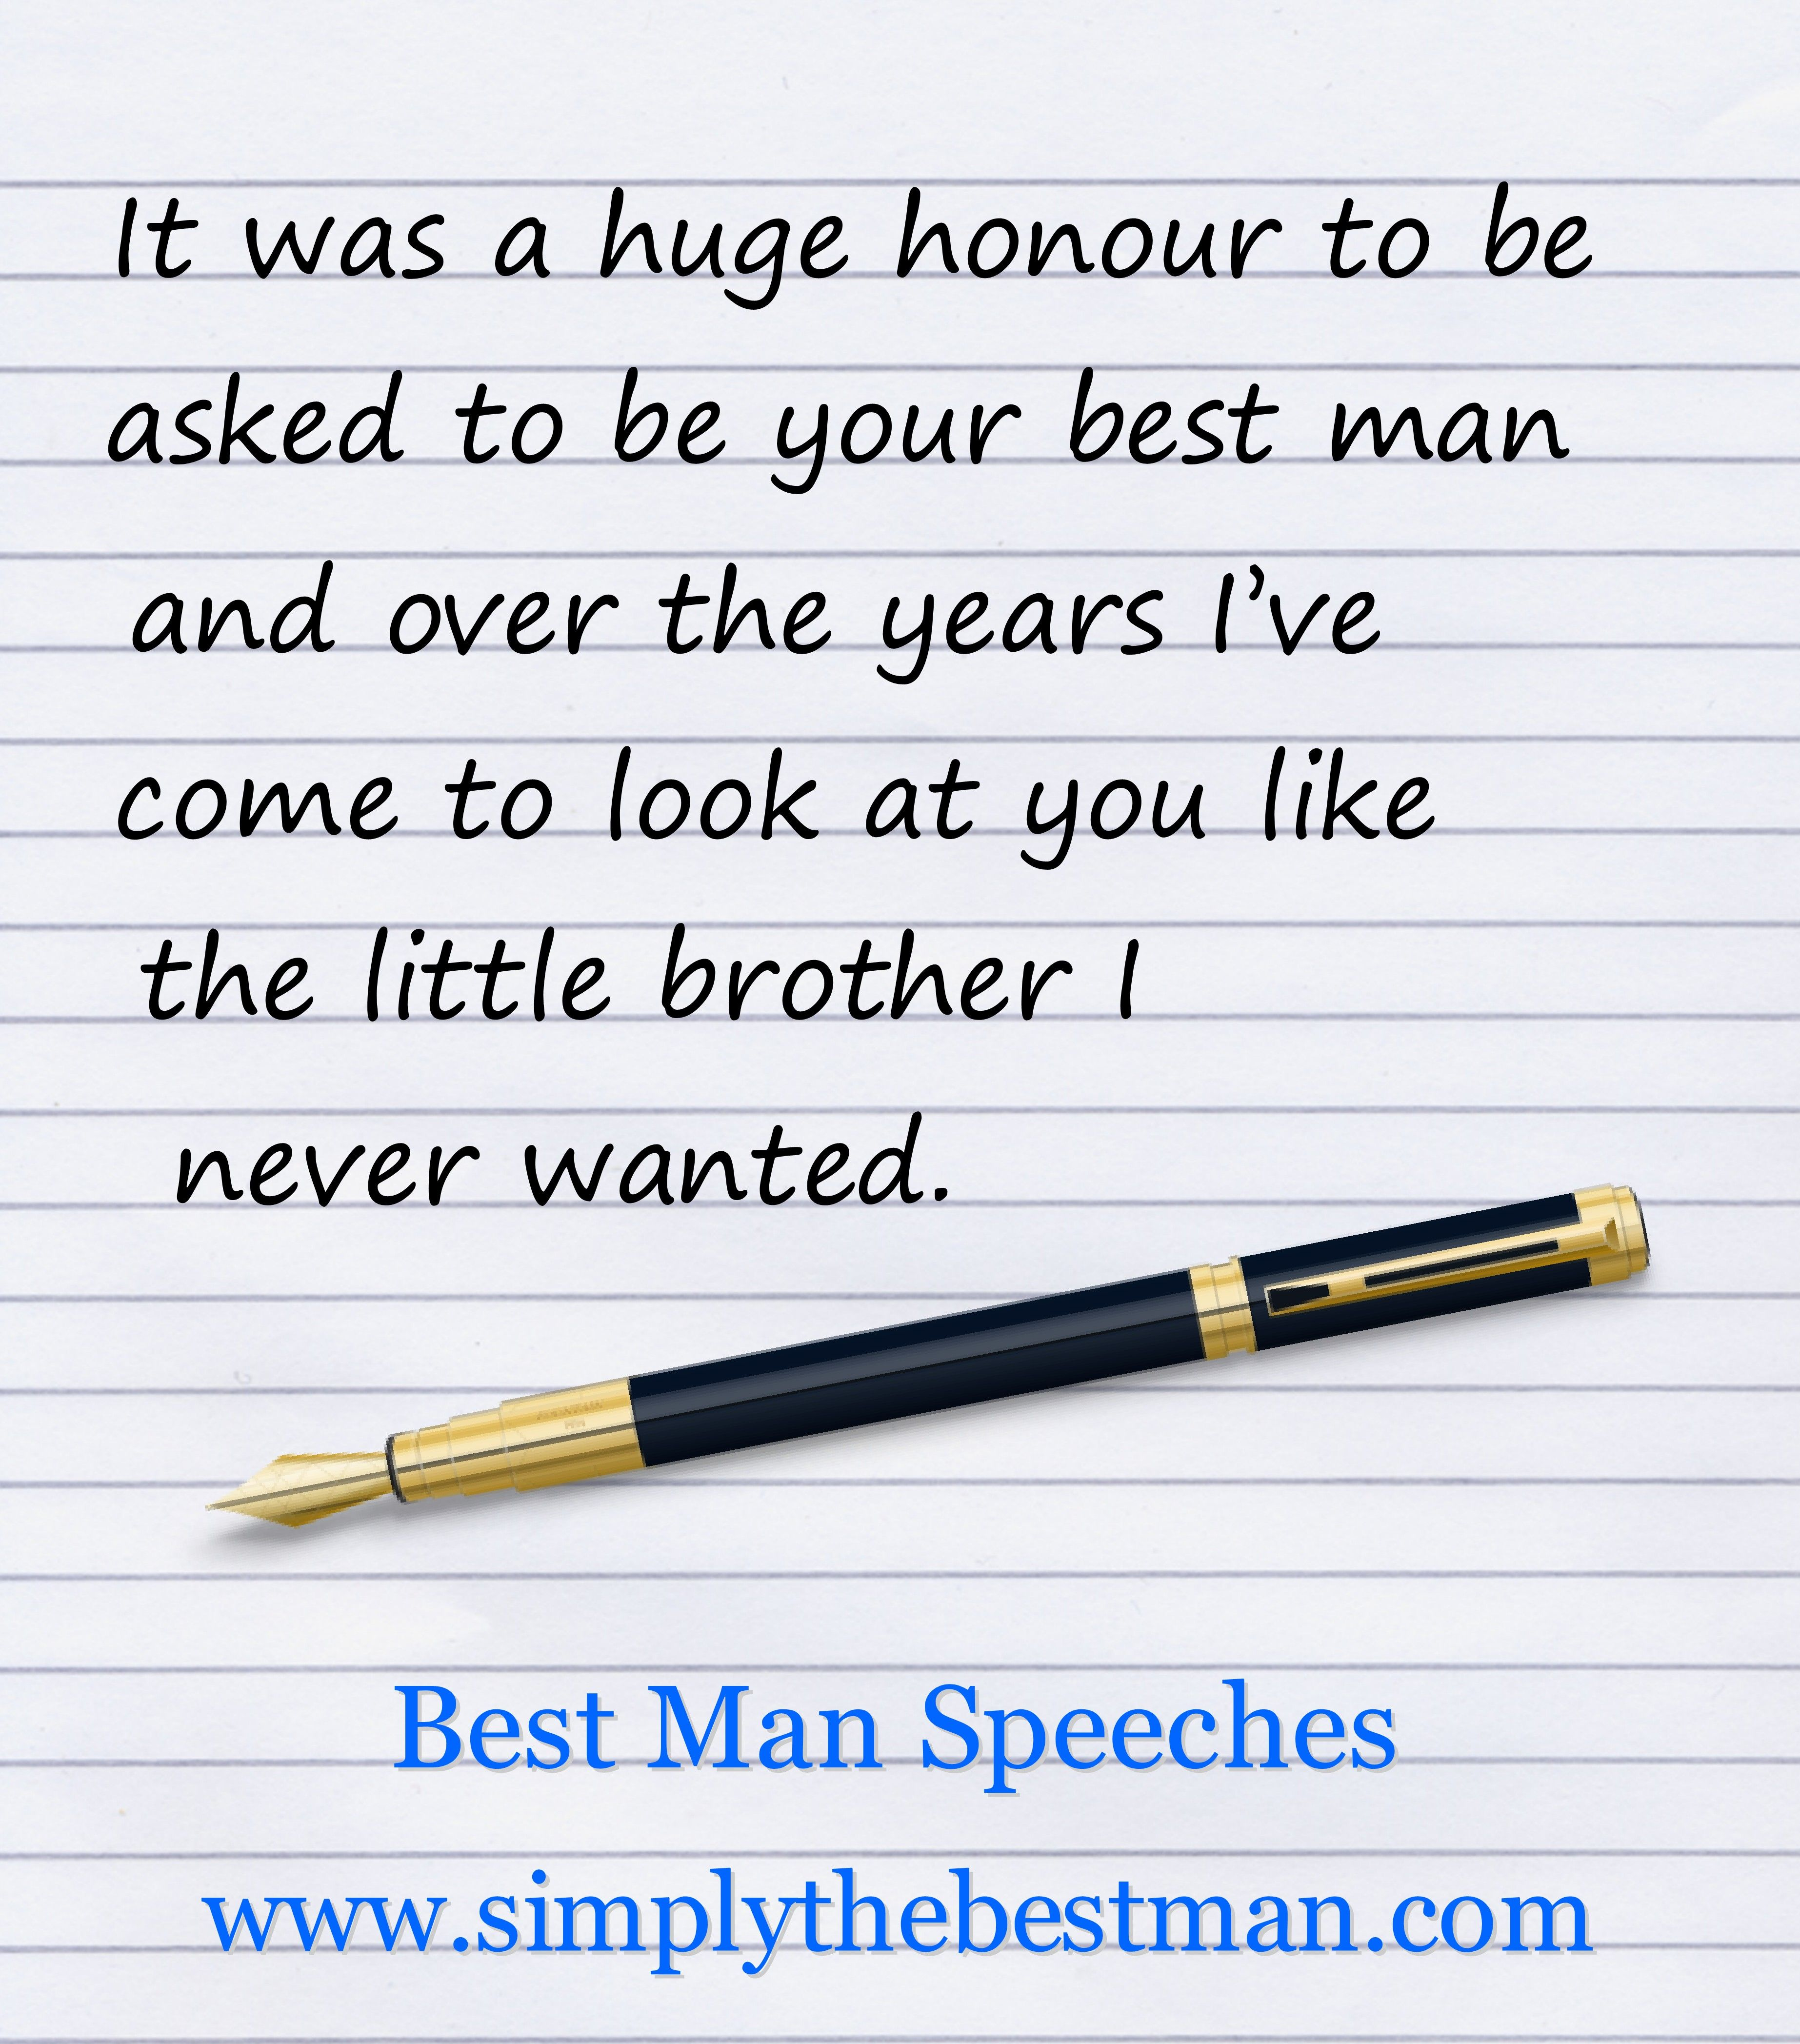 Build your Best Man speech using 100's of our jokes, ice